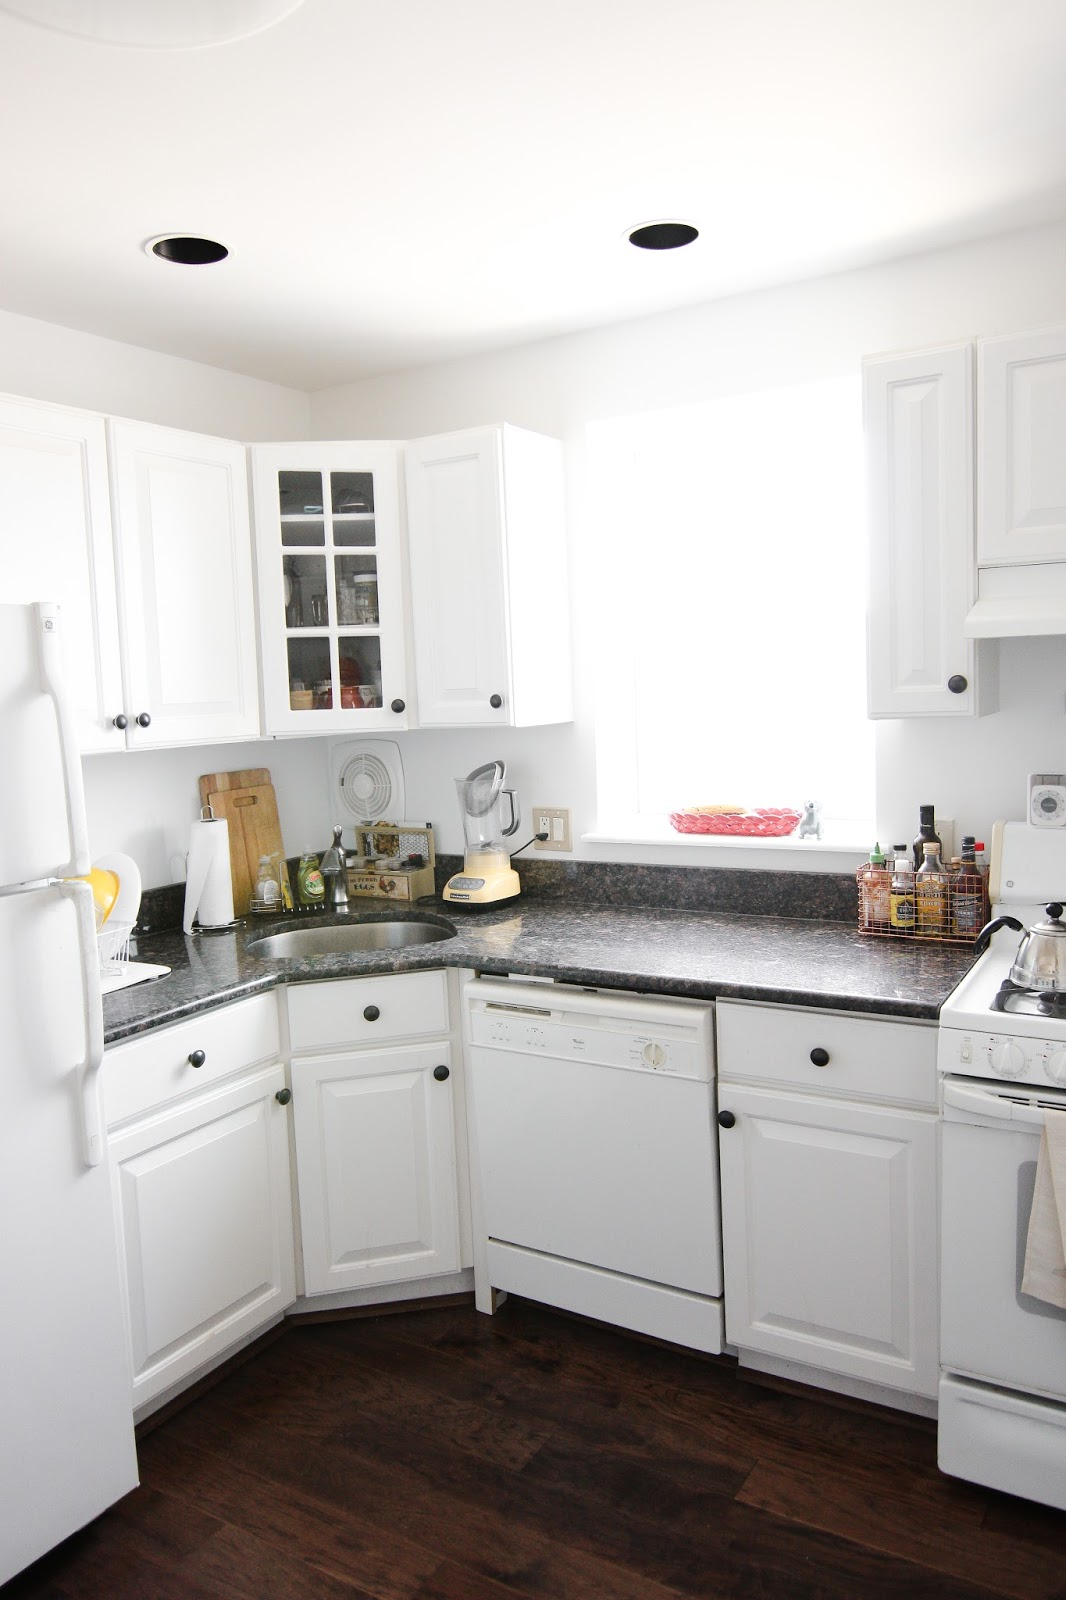 Our Farmhouse Kitchen Reno: Before & After